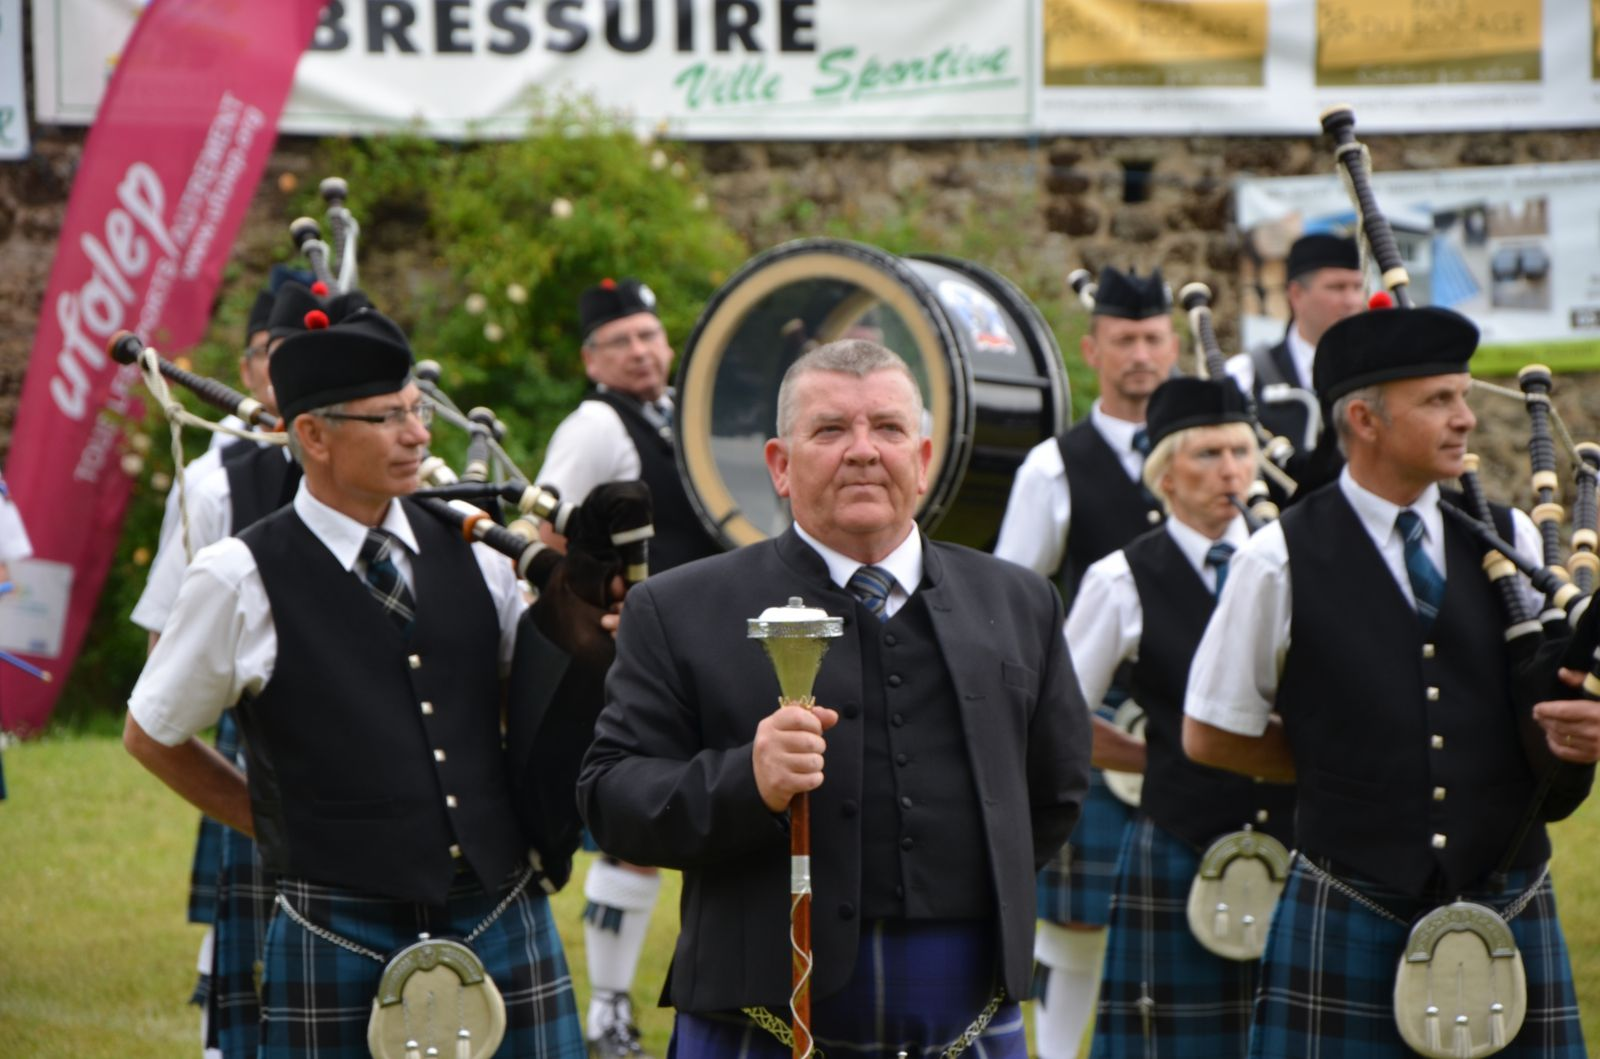 Highland Games - Bressuire 2013